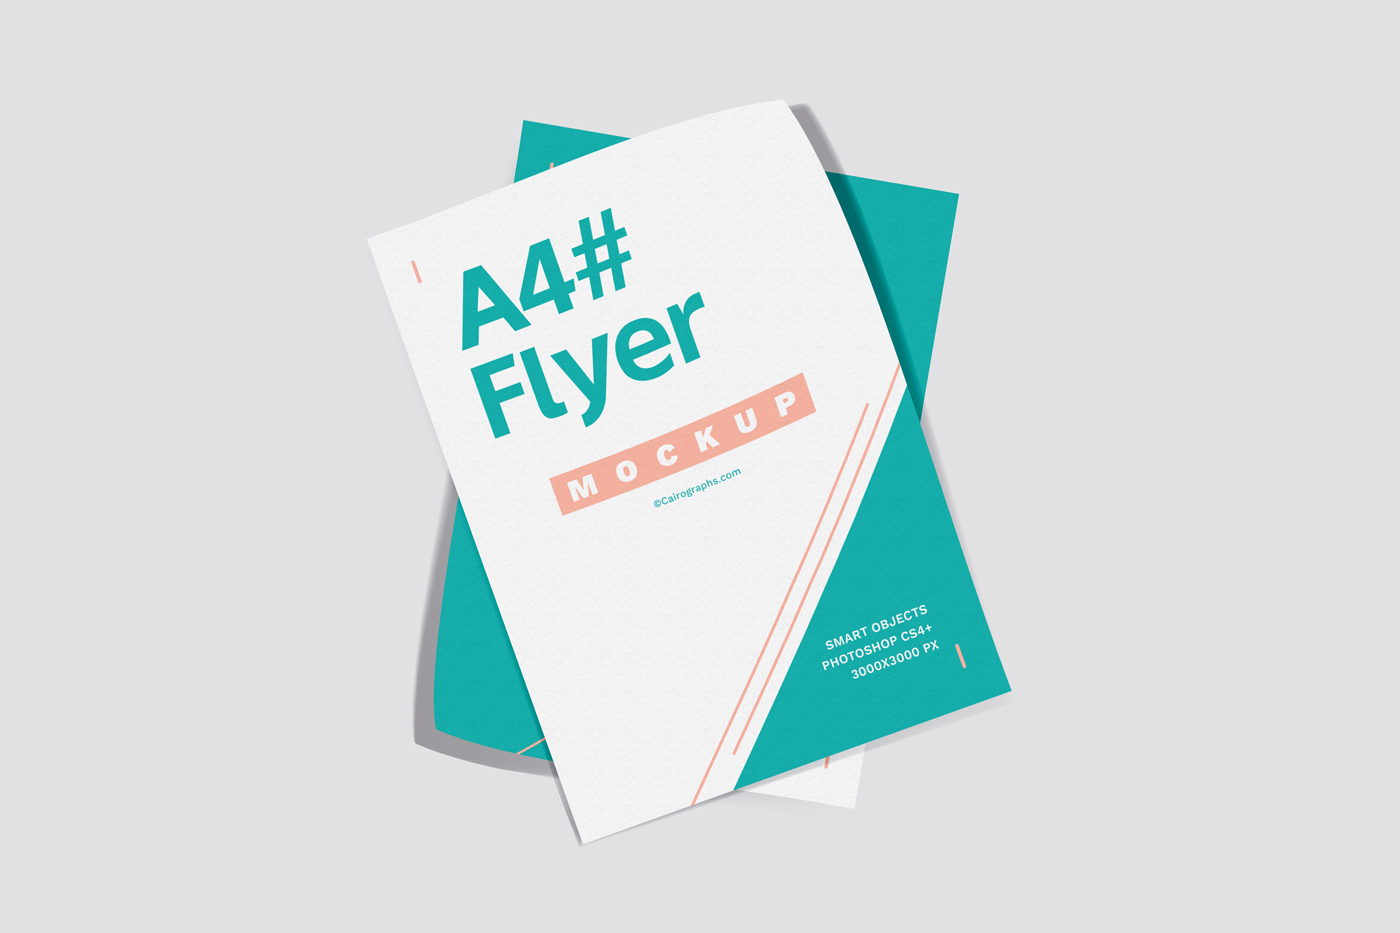 Posters & Flyers Mockups Vol.2 example image 10